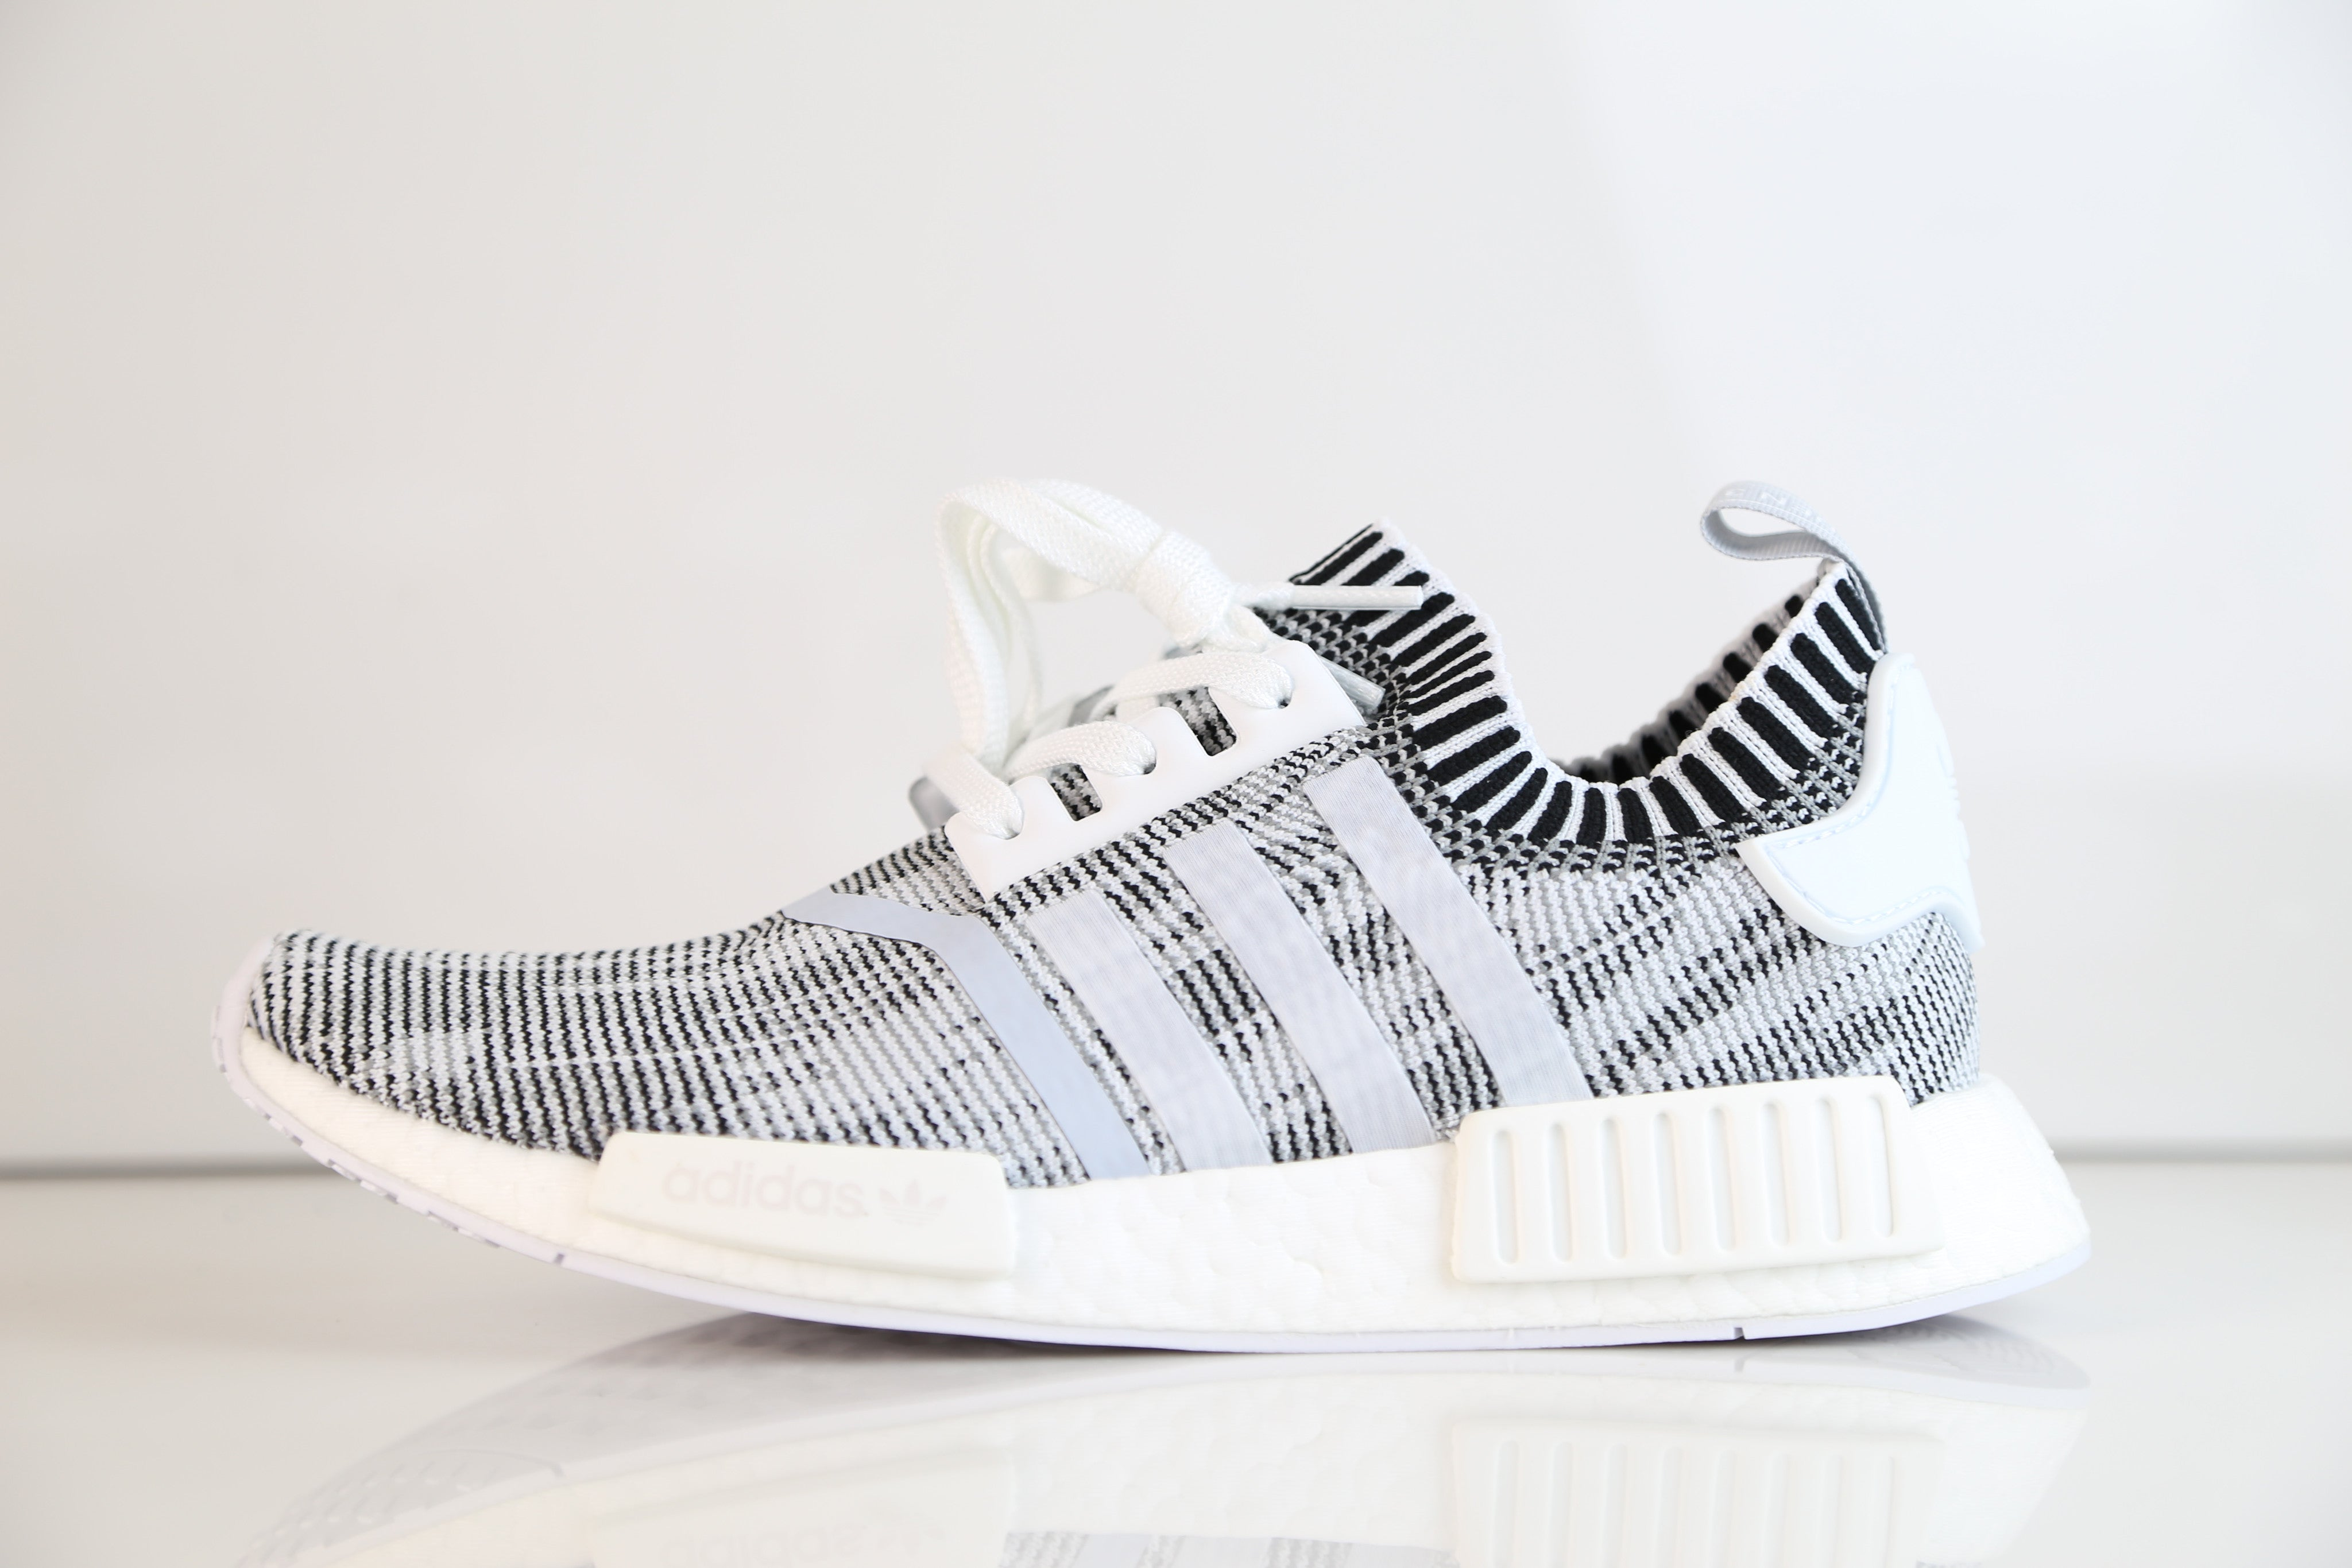 purchase cheap a9484 af996 Adidas NMD R1 PK Oreo White Black Glitch Camo BY1911 ...